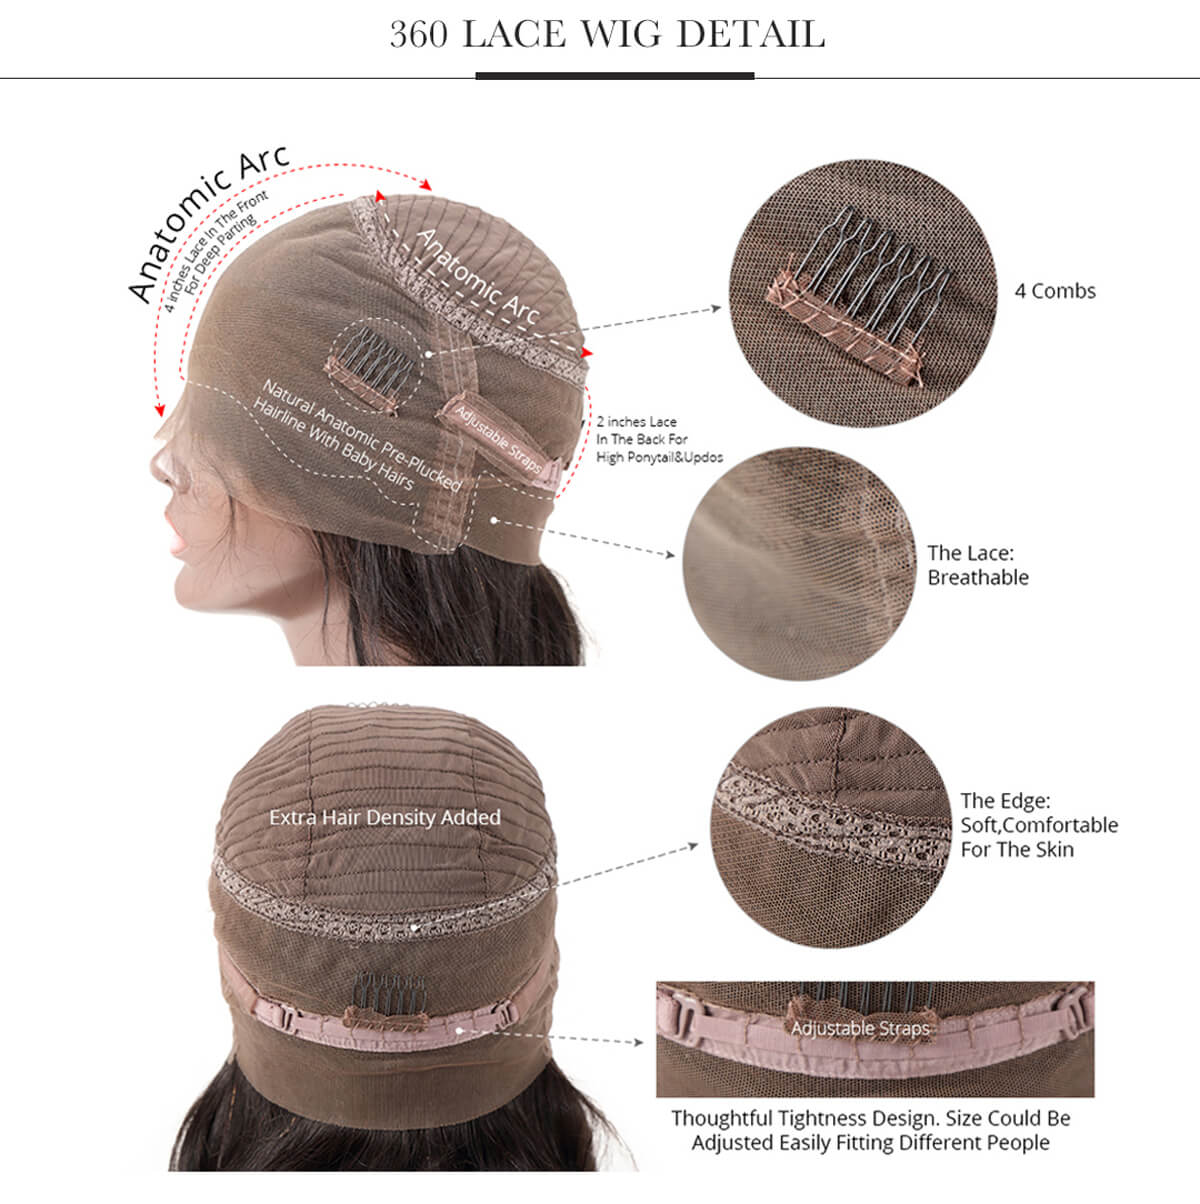 360 Lace Front Wig Detail Tuneful Wig 100% Human Hair Wig